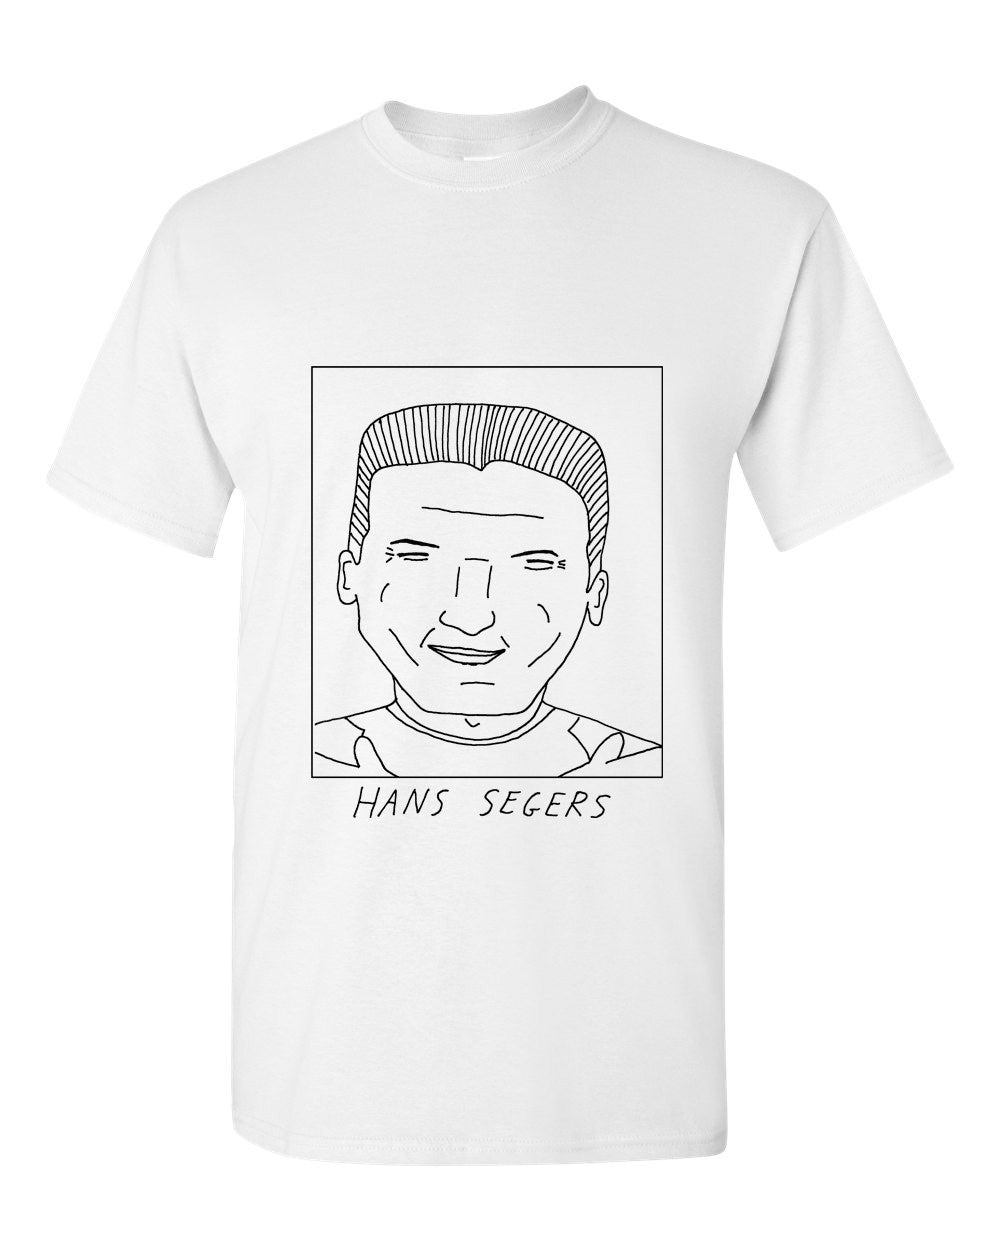 Badly Drawn Hans Segers T-shirt - 1994 Wimbledon